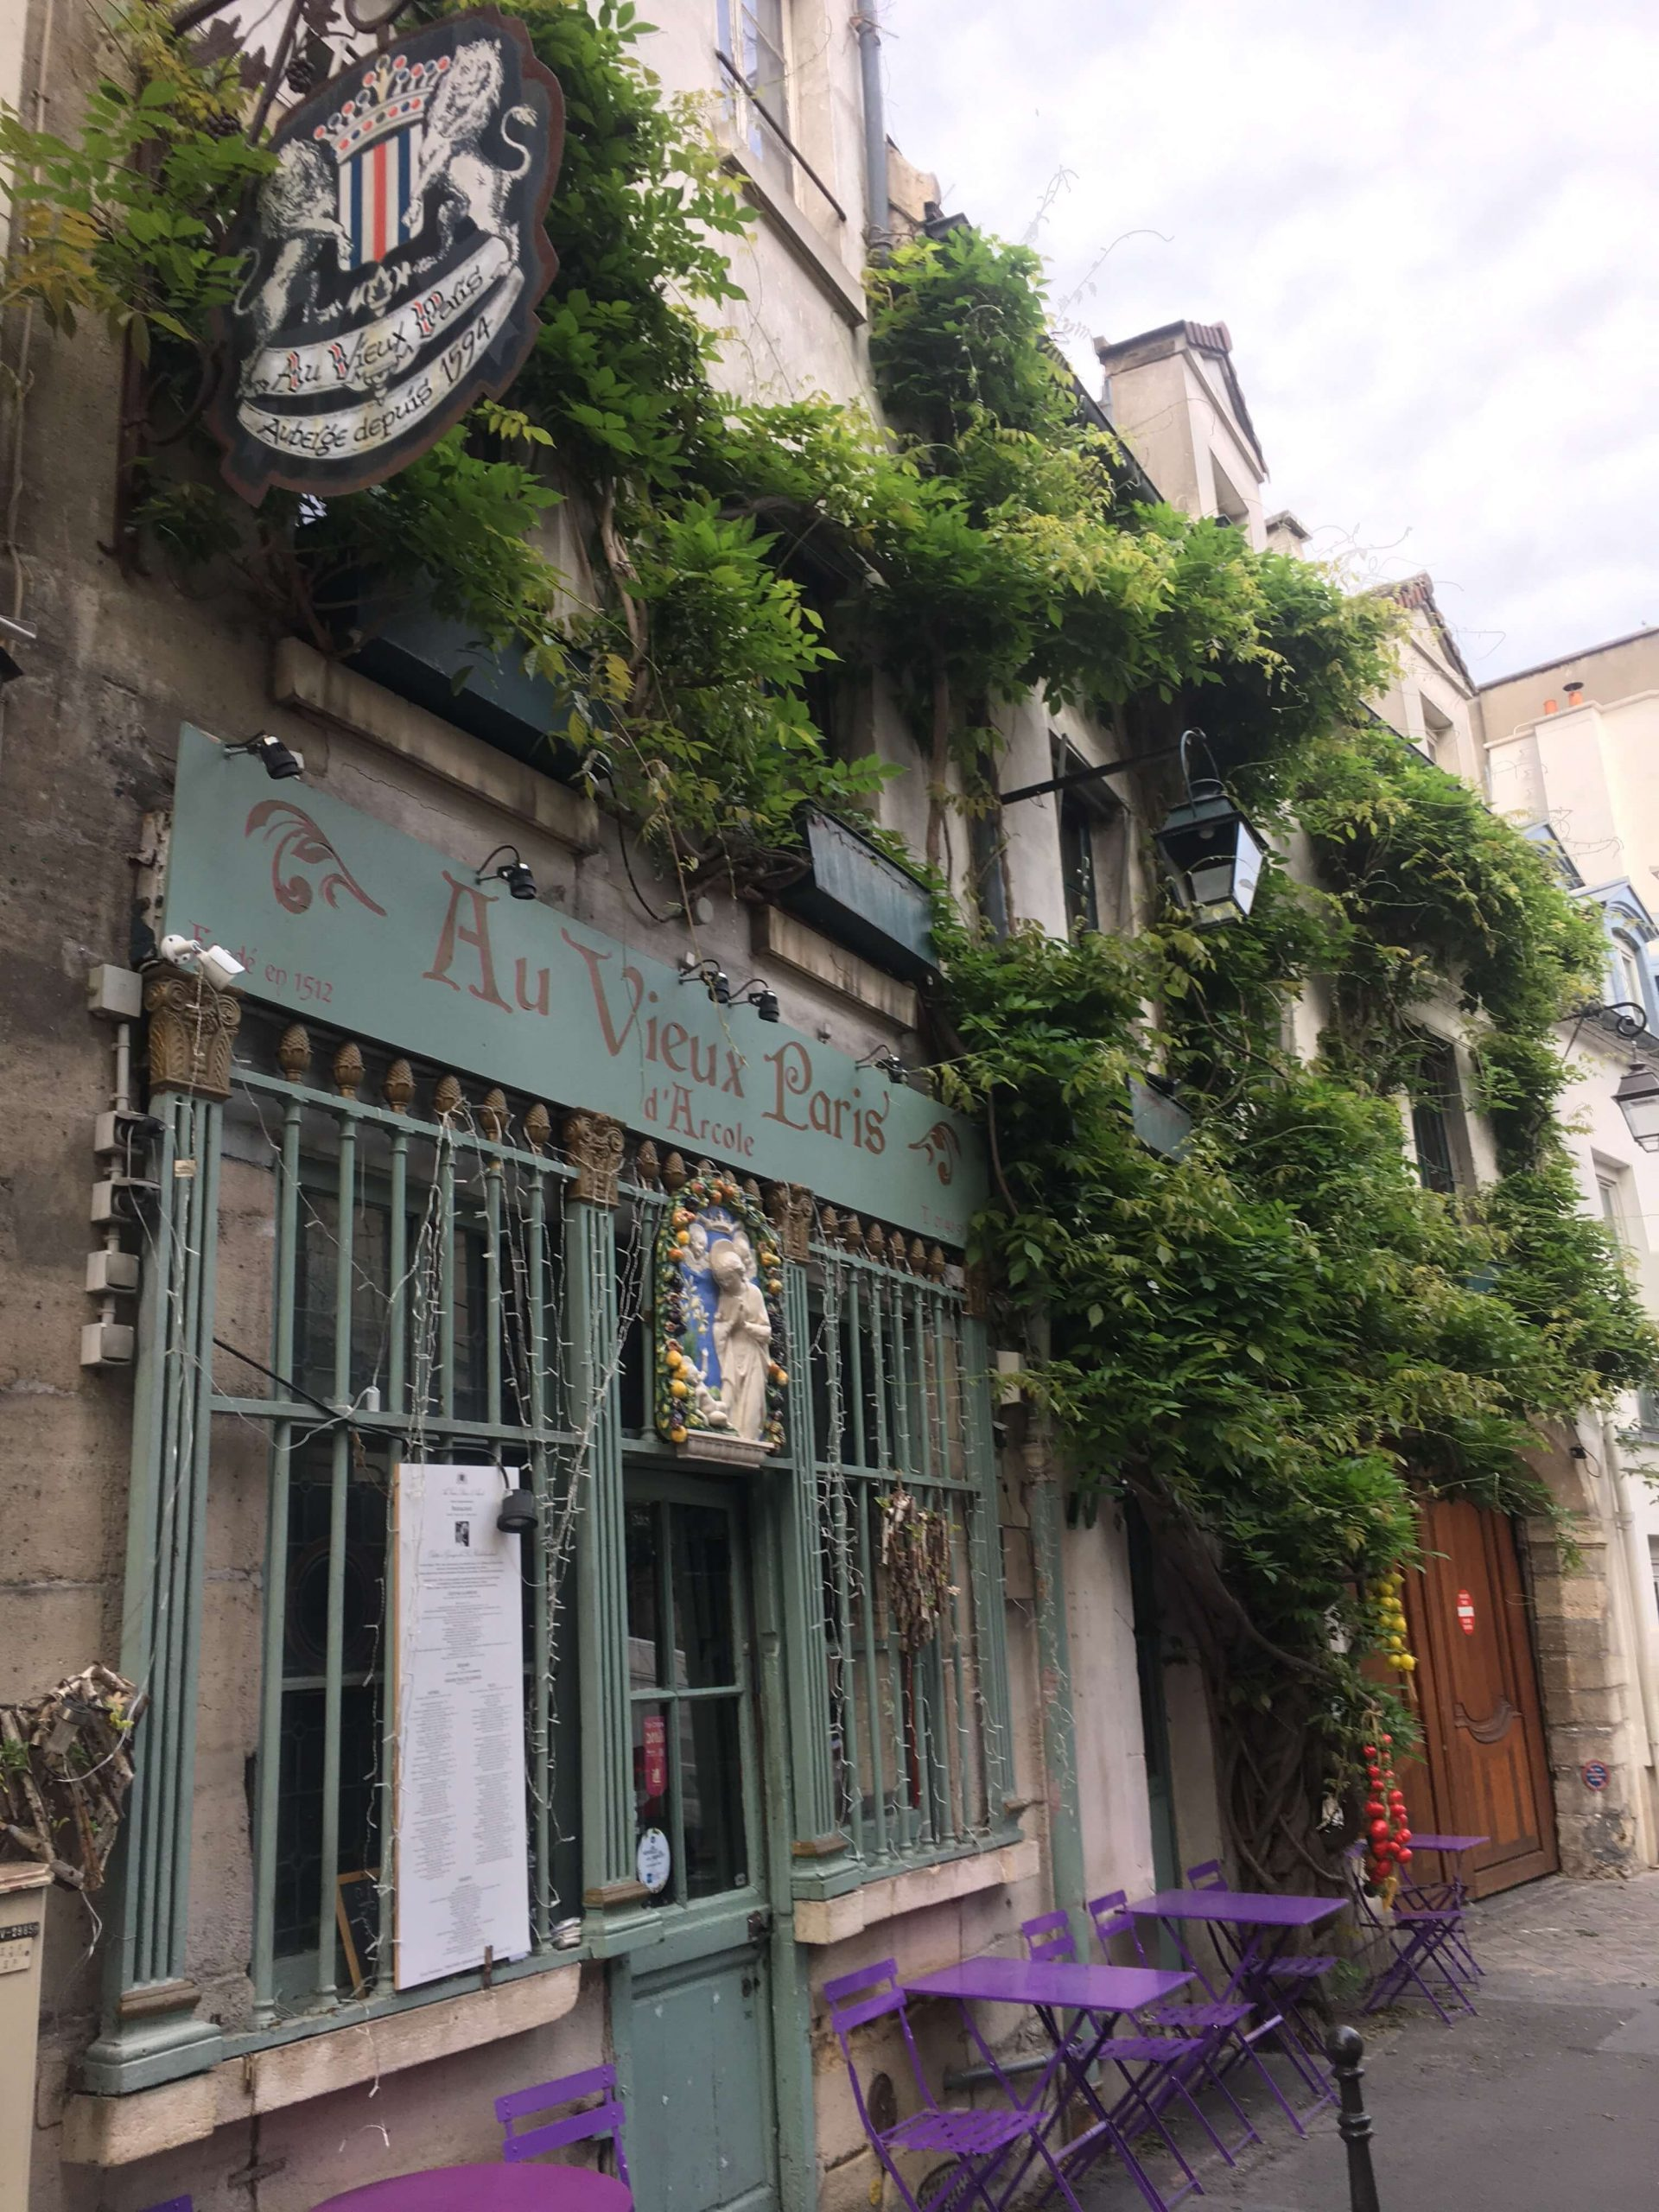 Lots of green plants and vines around a window in Paris